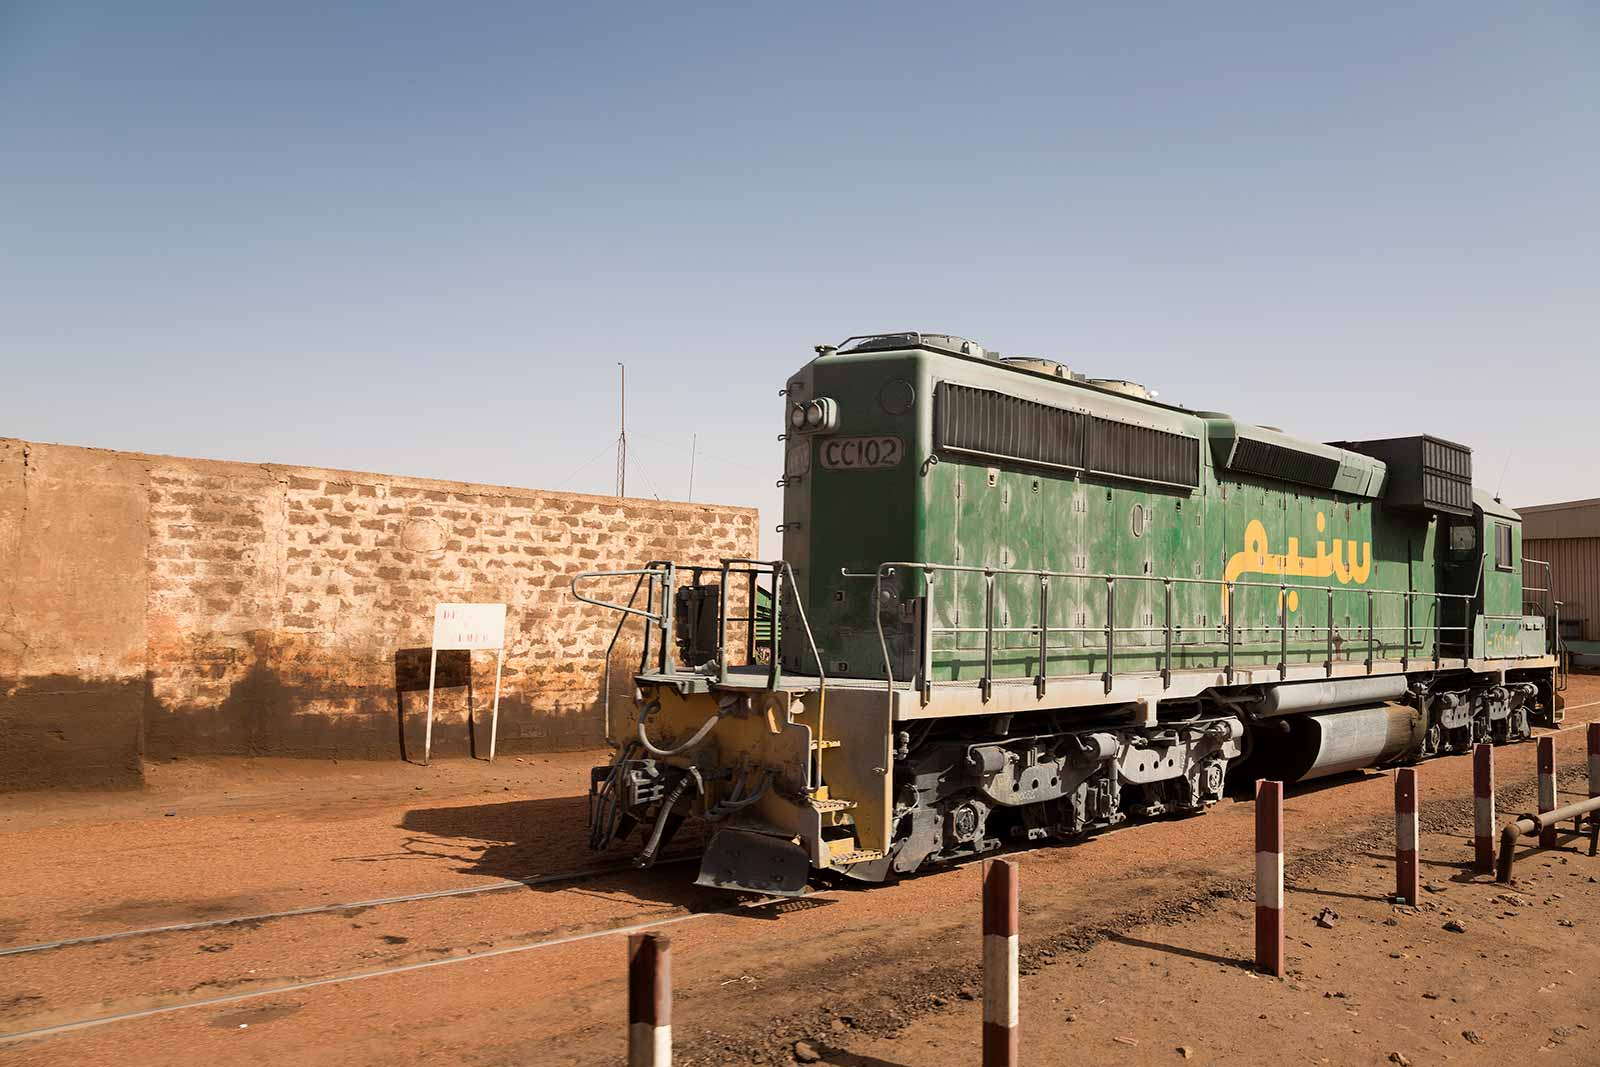 The bulk cargo train travels from the Sahara desert to the coast through dry nowhere to transport valuable minerals across Mauritania.